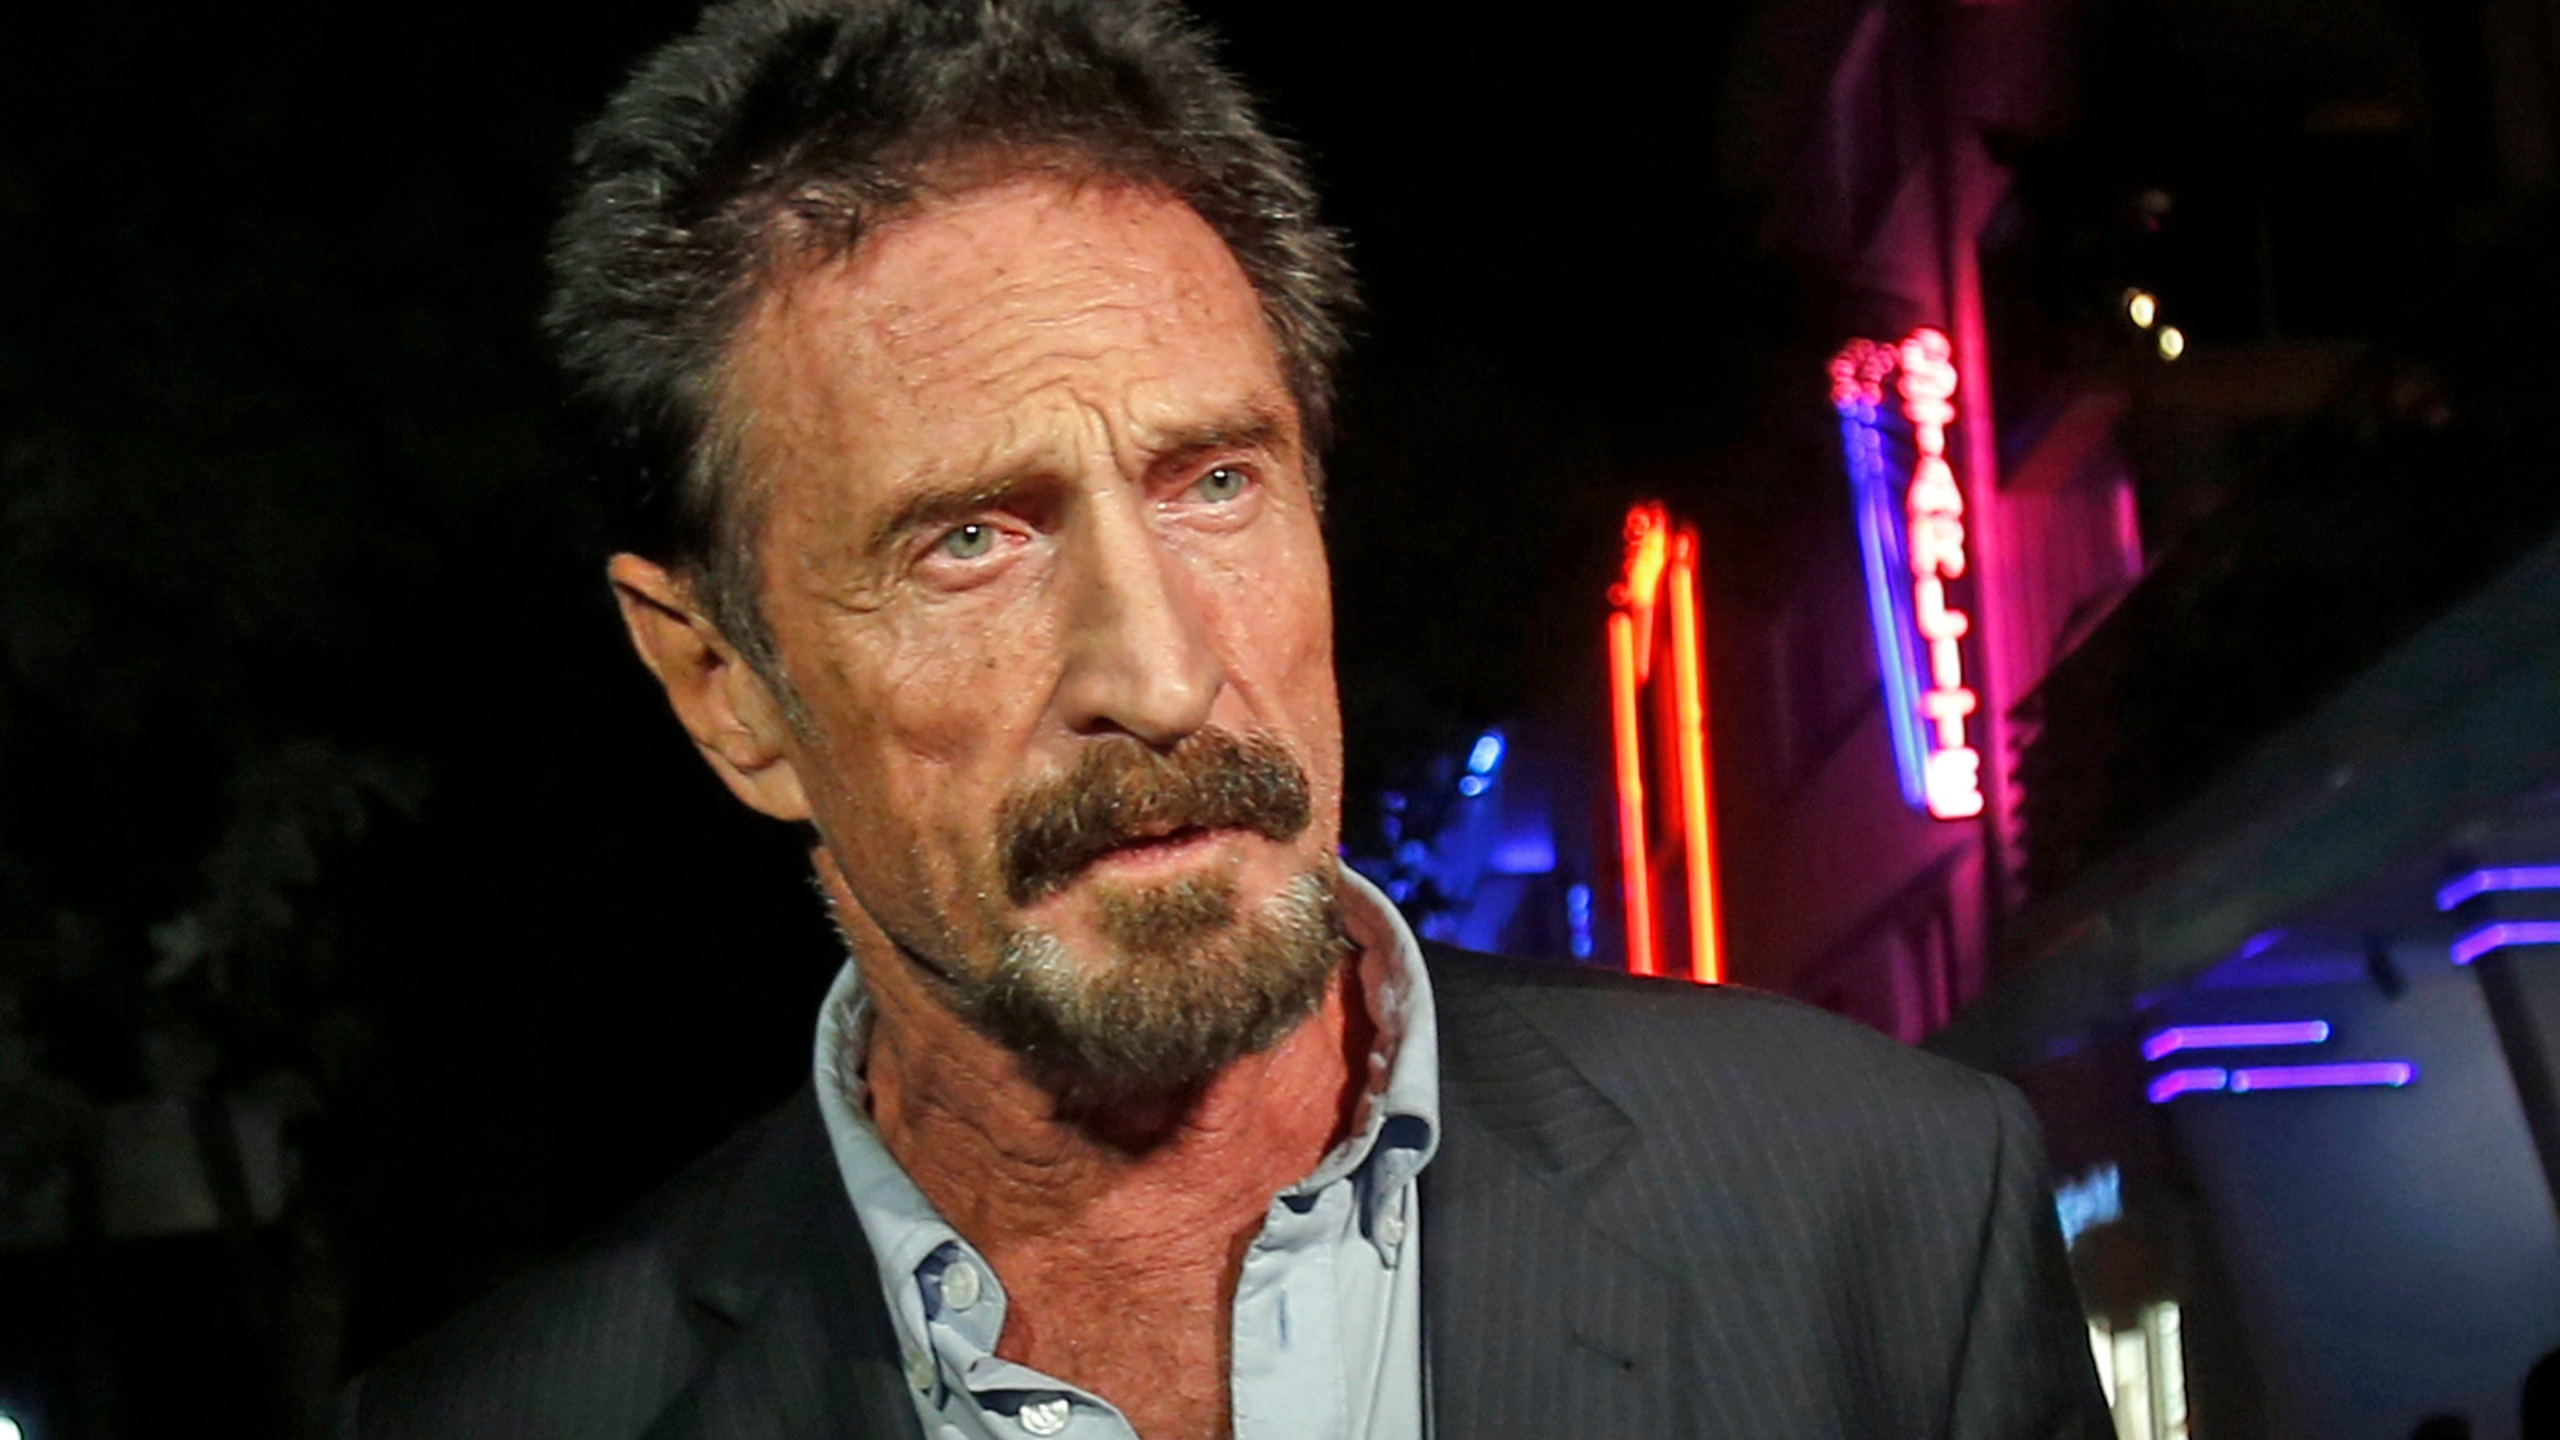 In this Dec. 12, 2012 file photo, anti-virus software founder John McAfee answers questions to reporters as he walks on Ocean Drive, in the South Beach area of Miami Beach, Fla. (AP Photo/Alan Diaz, File)